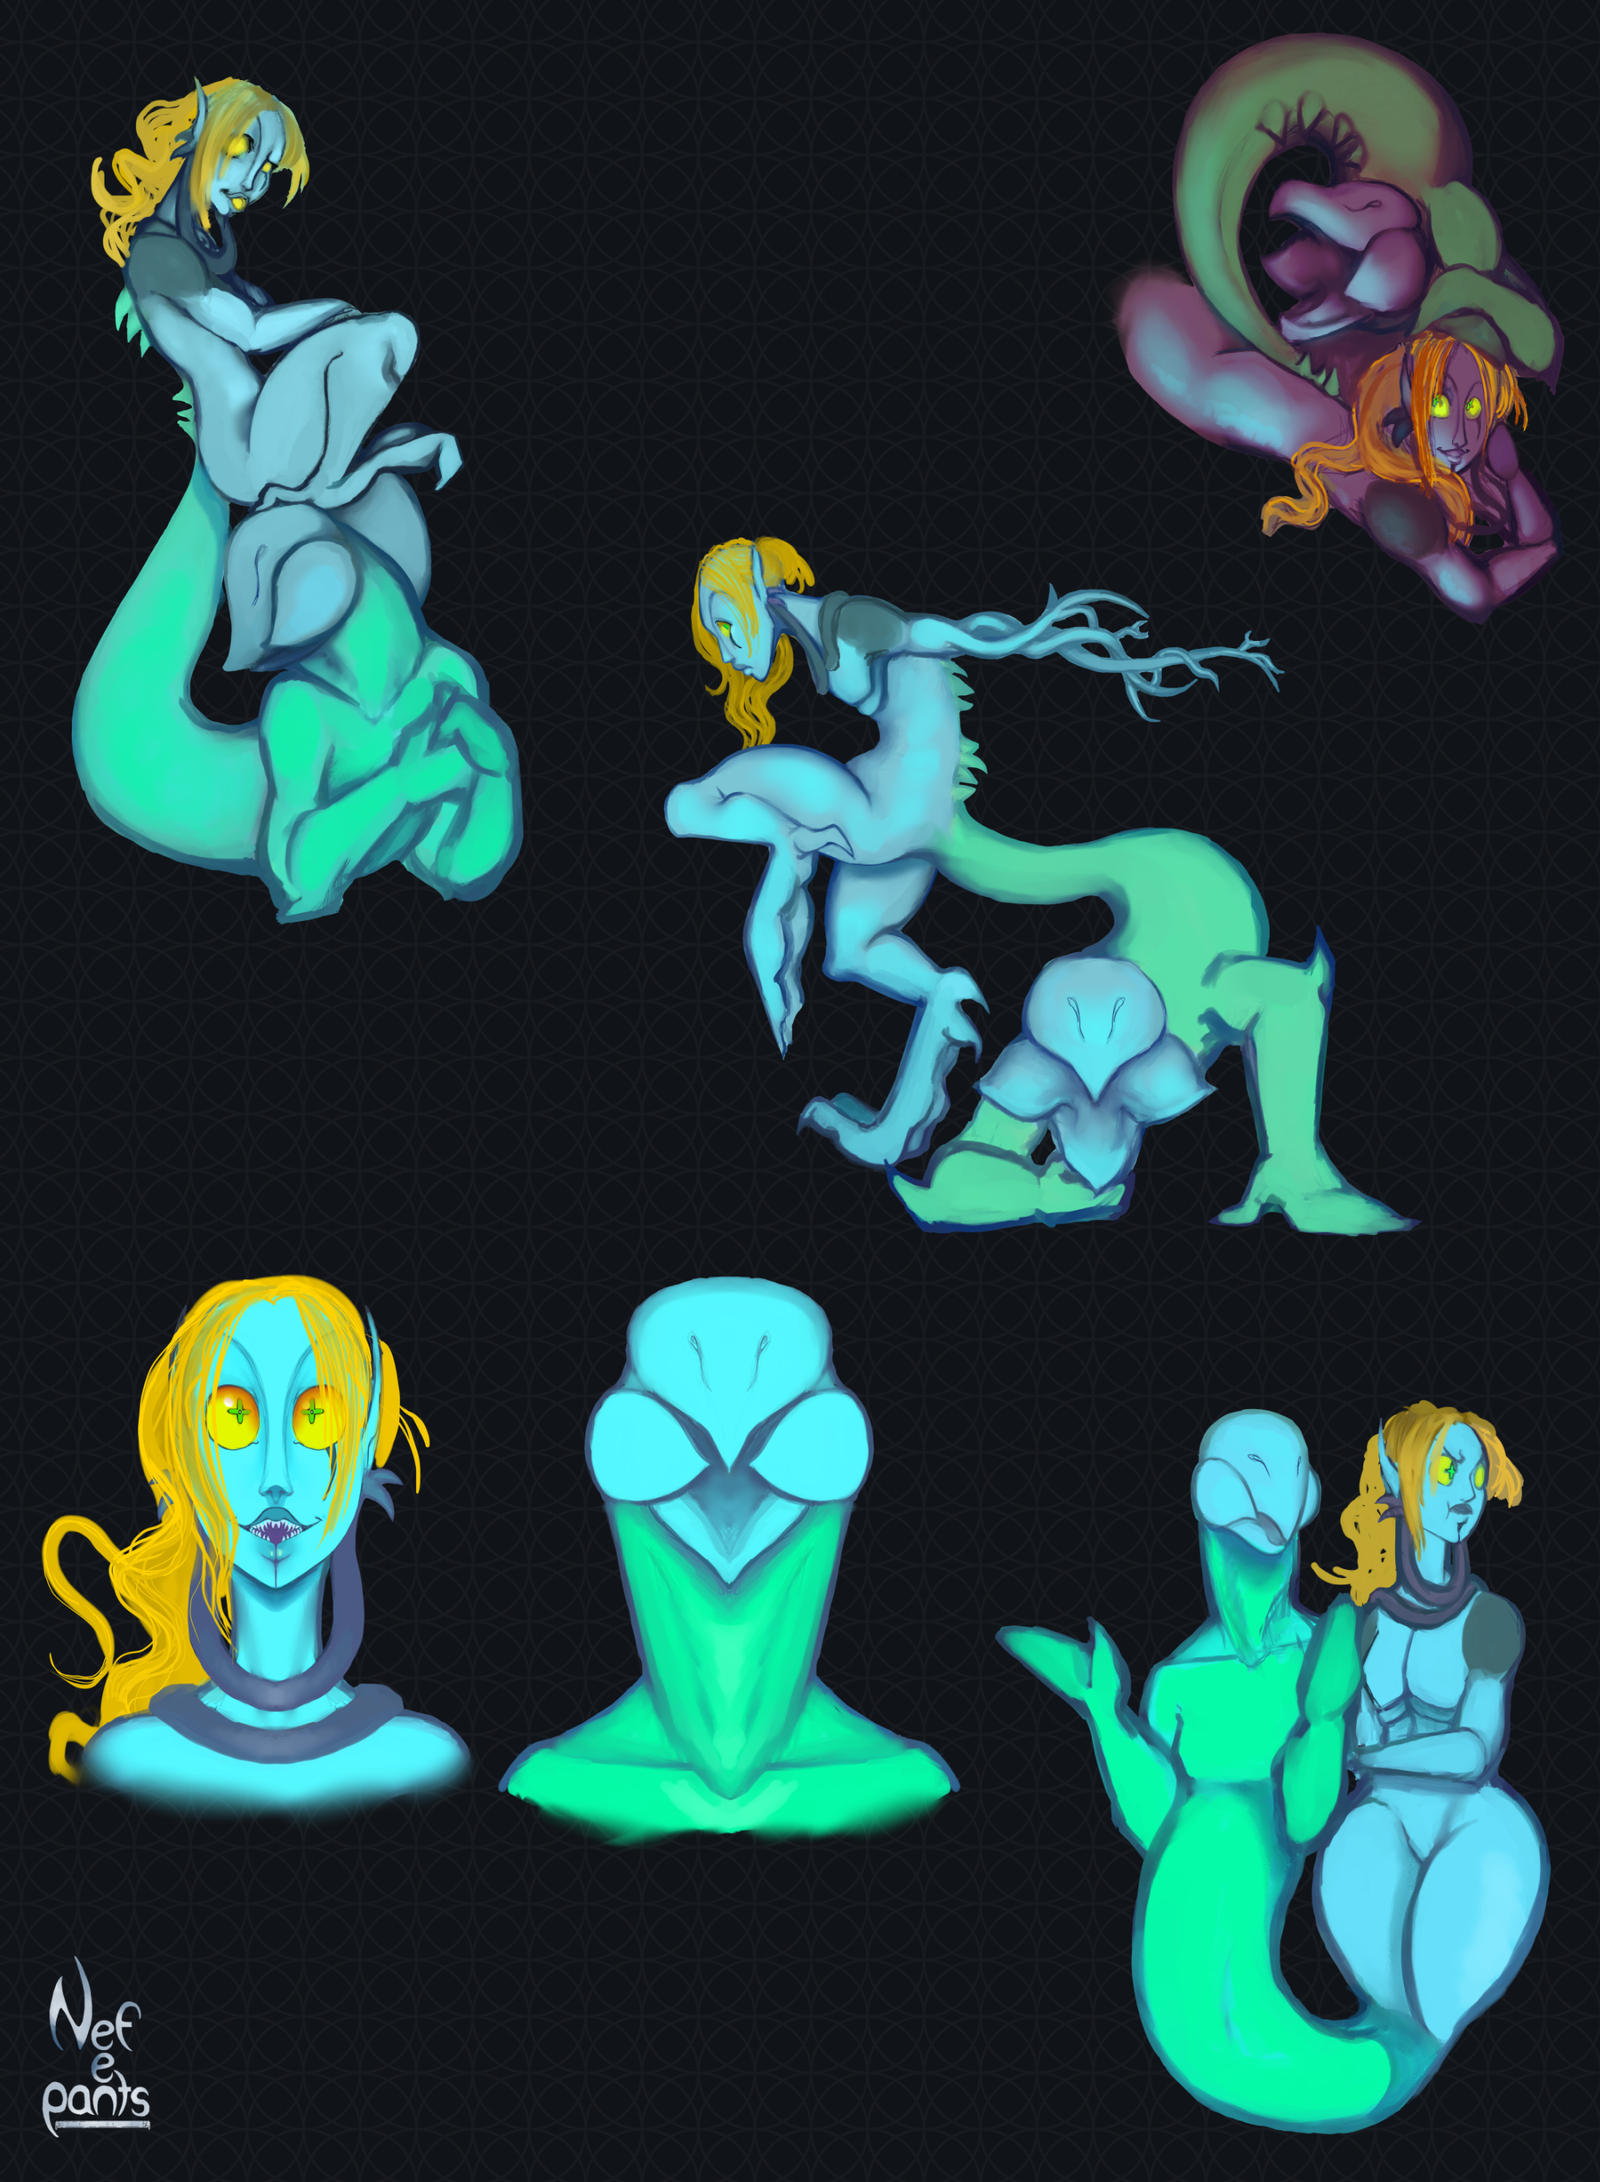 Space twin doodles 2 by Nefepants